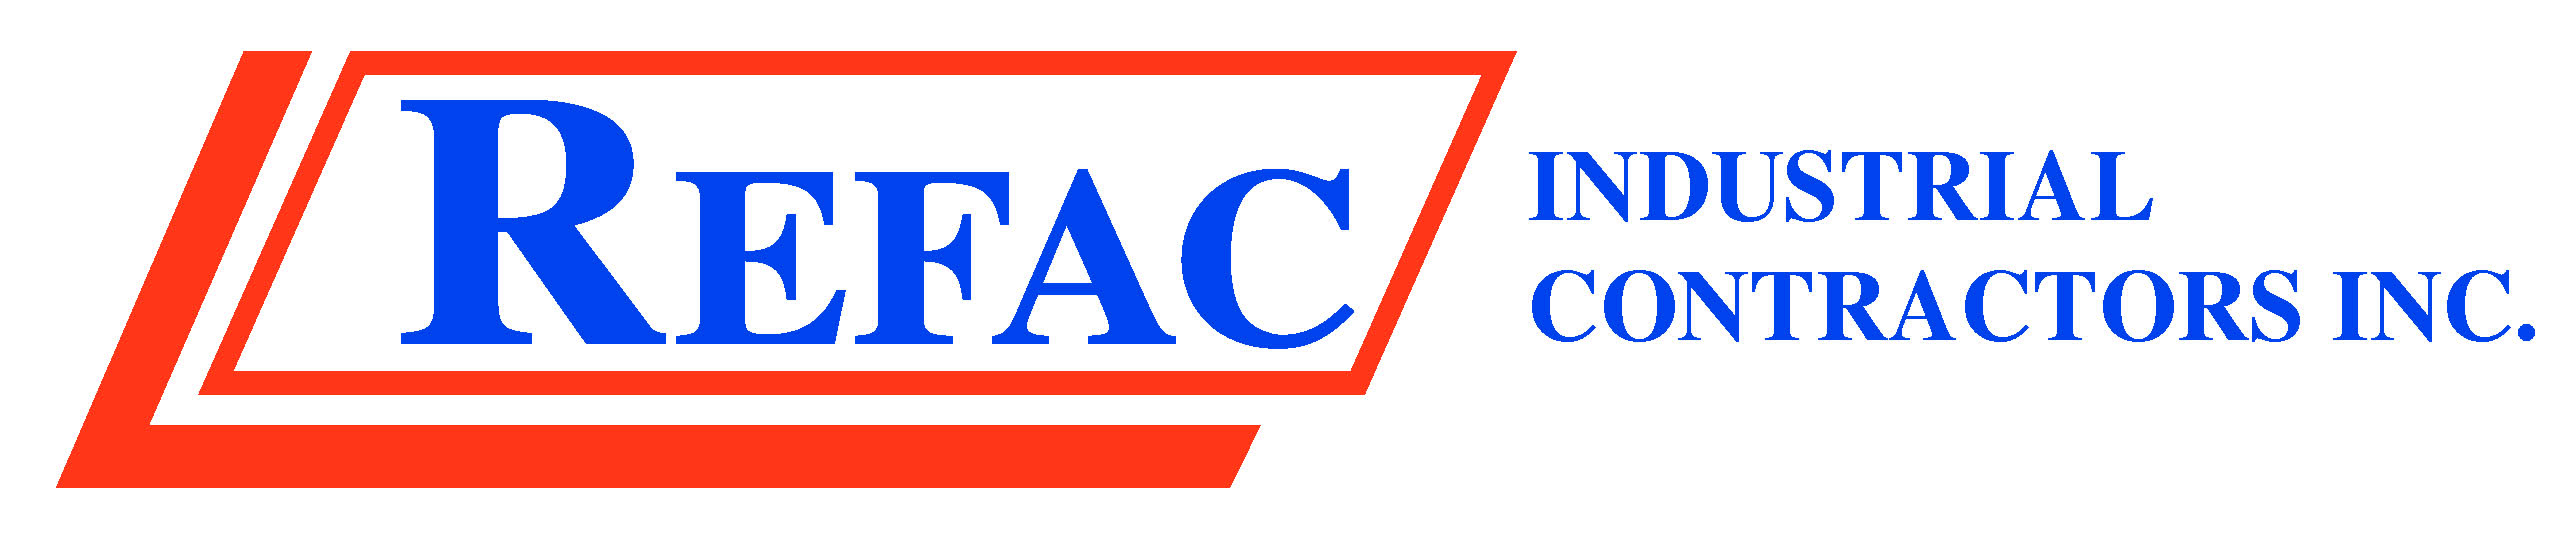 REFAC Industrial Contractors Inc.